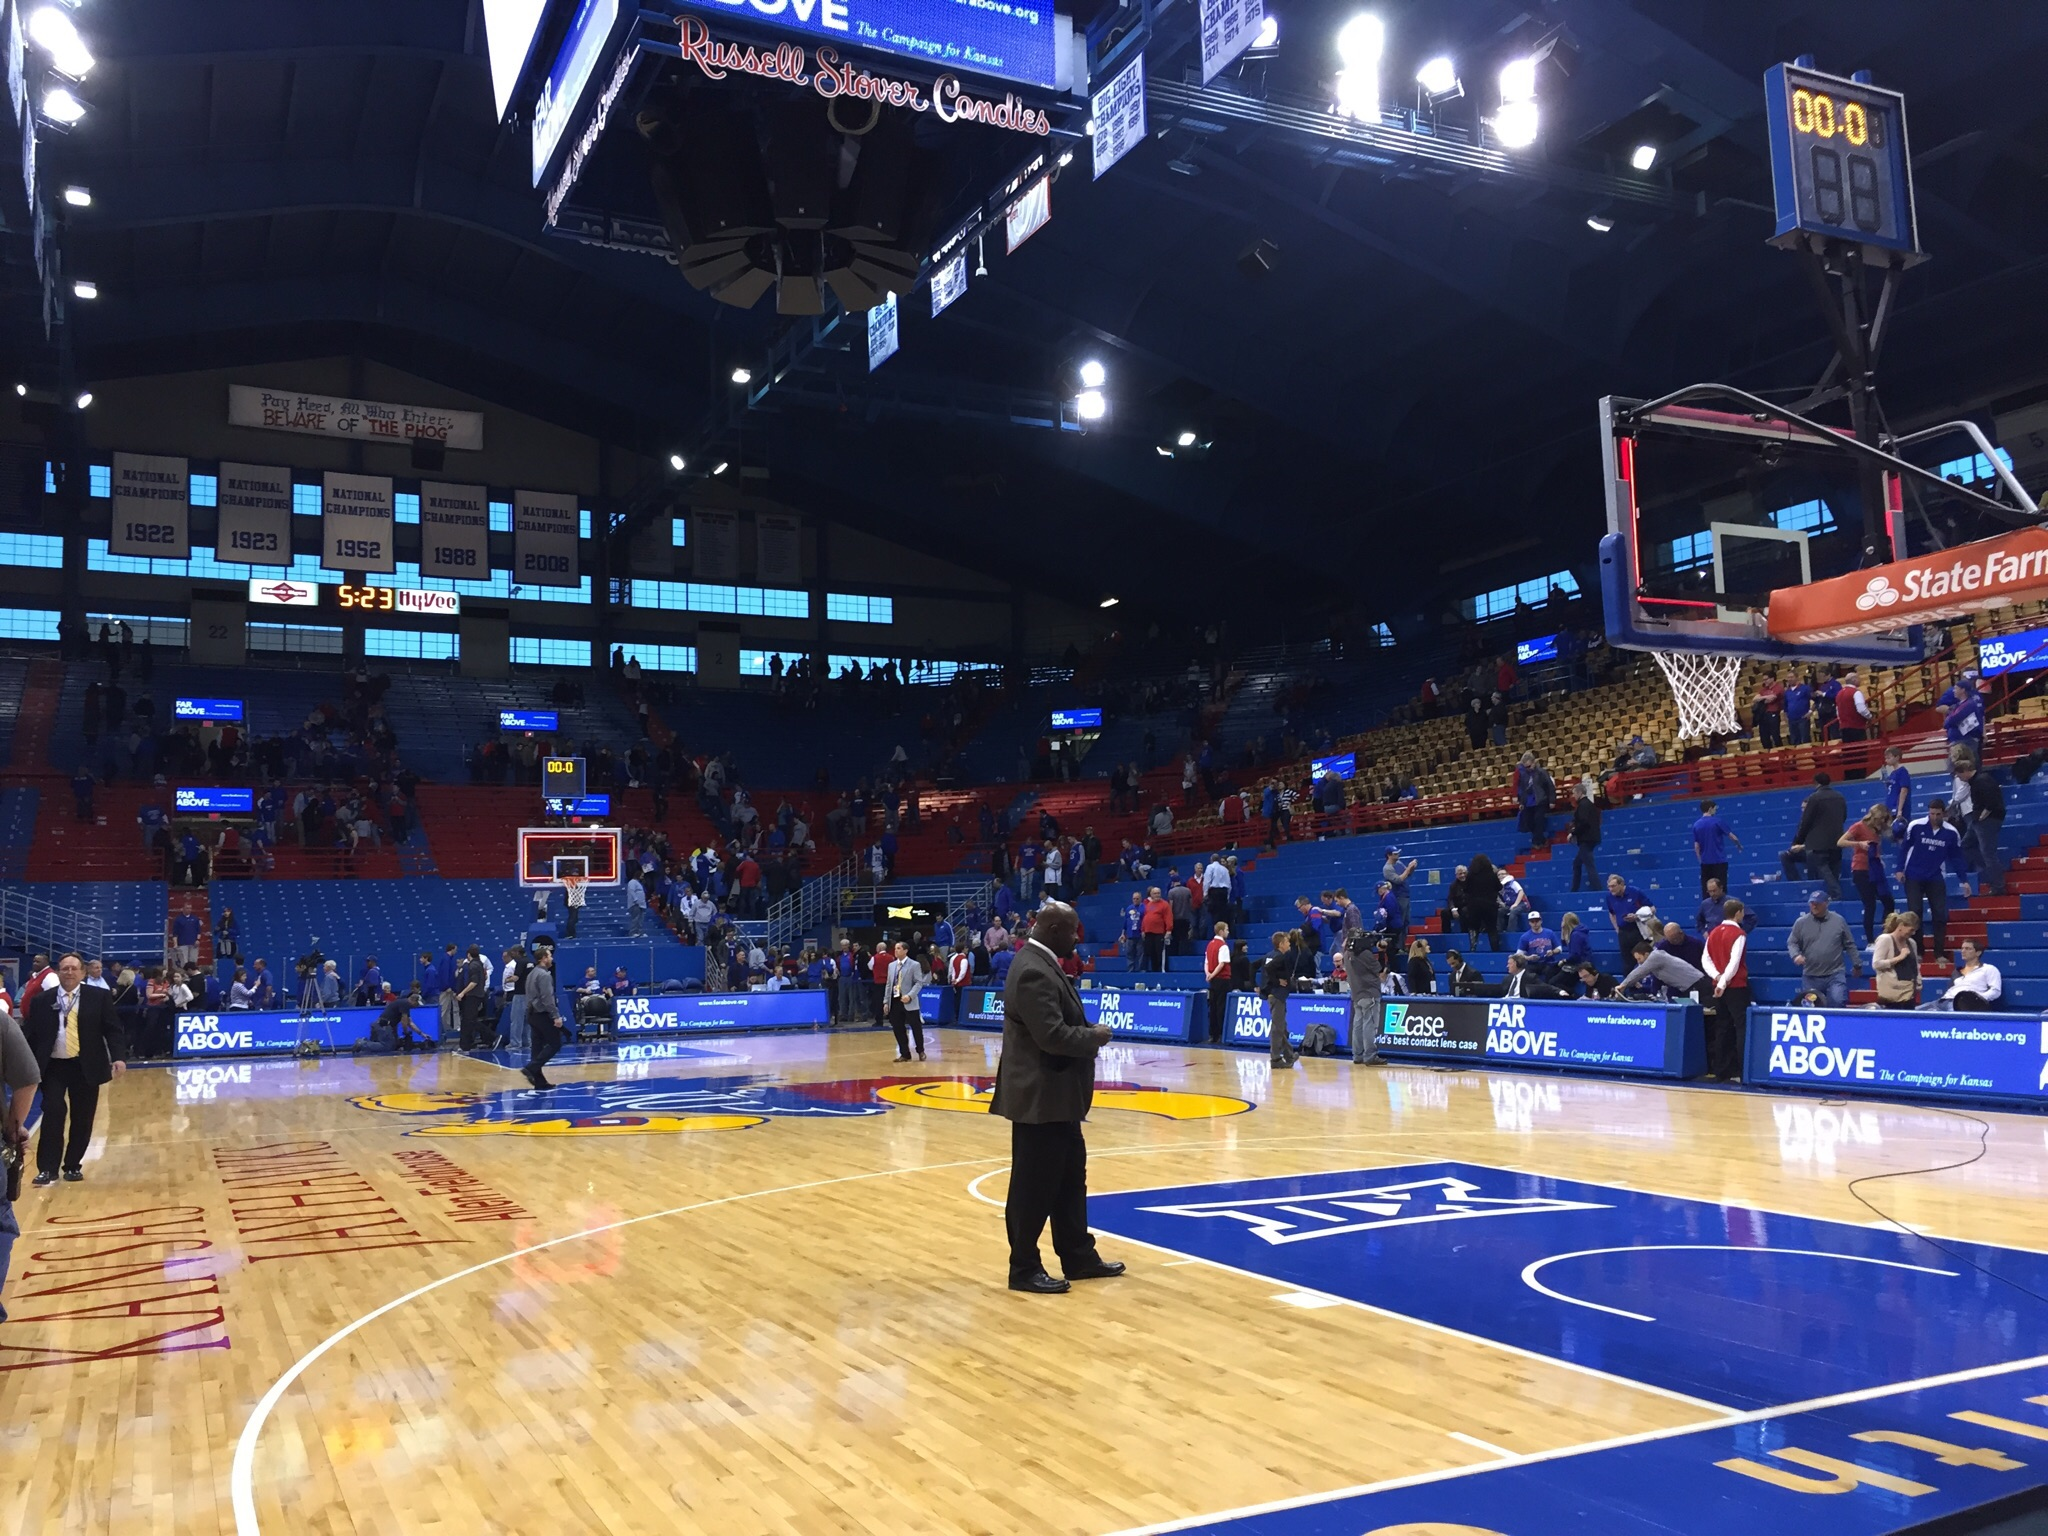 The floor at Allen Fieldhouse before KU's victory over the Wildcats on Feb. 21, 2014. Photo by Ryan Landreth.